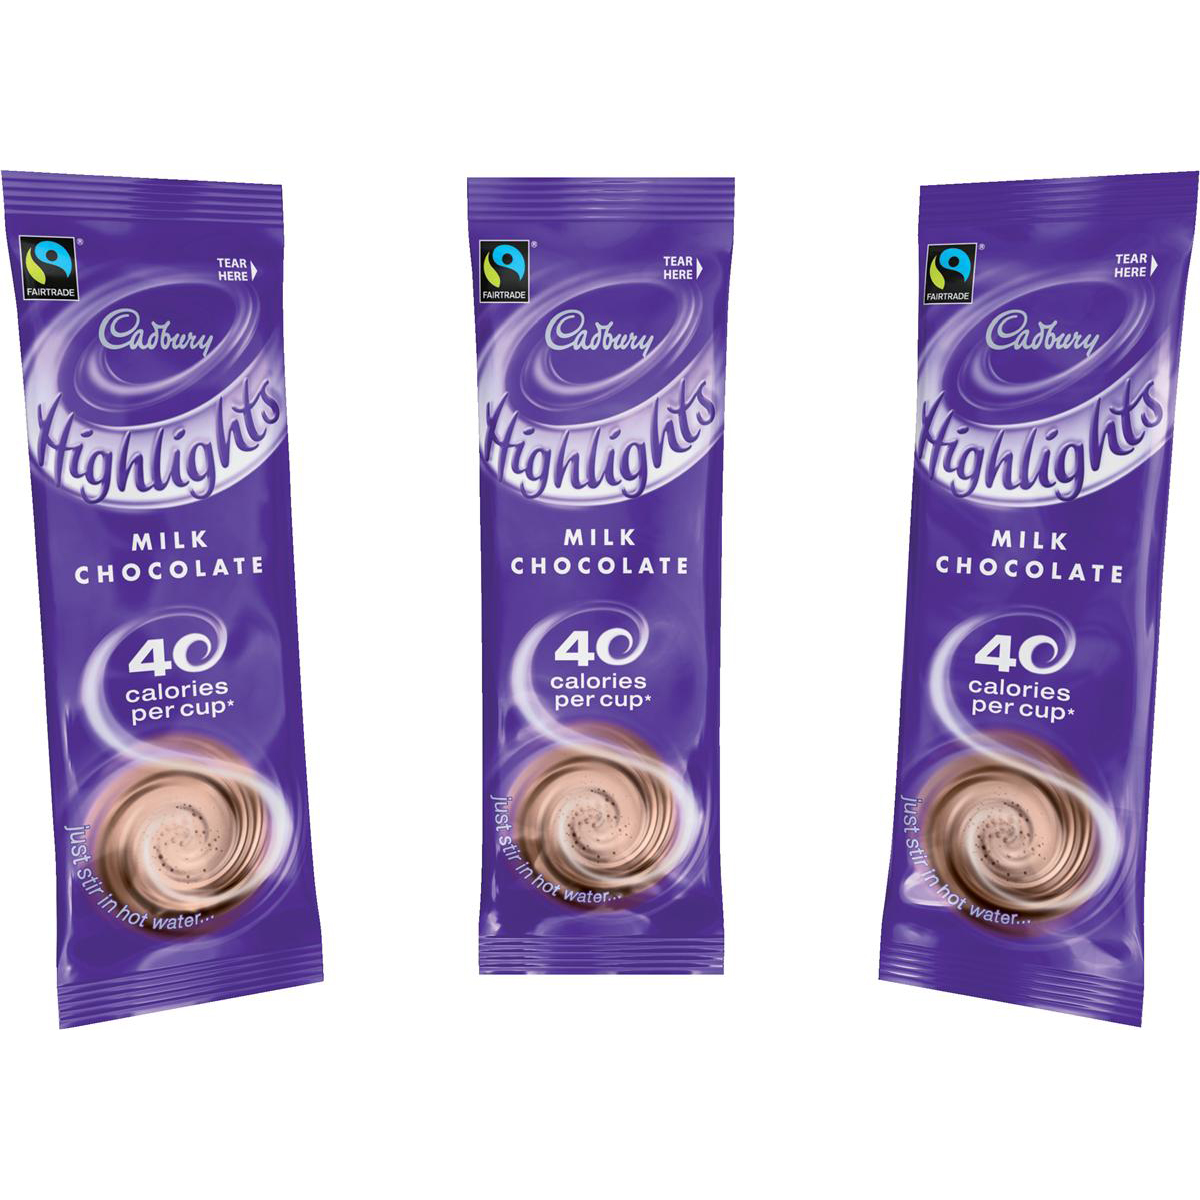 Chocolate or malt or other hot beverages Cadbury Chocolate Highlights Fairtrade Hot Chocolate Powder Sachets Low Calorie Ref 0403173 Pack 30